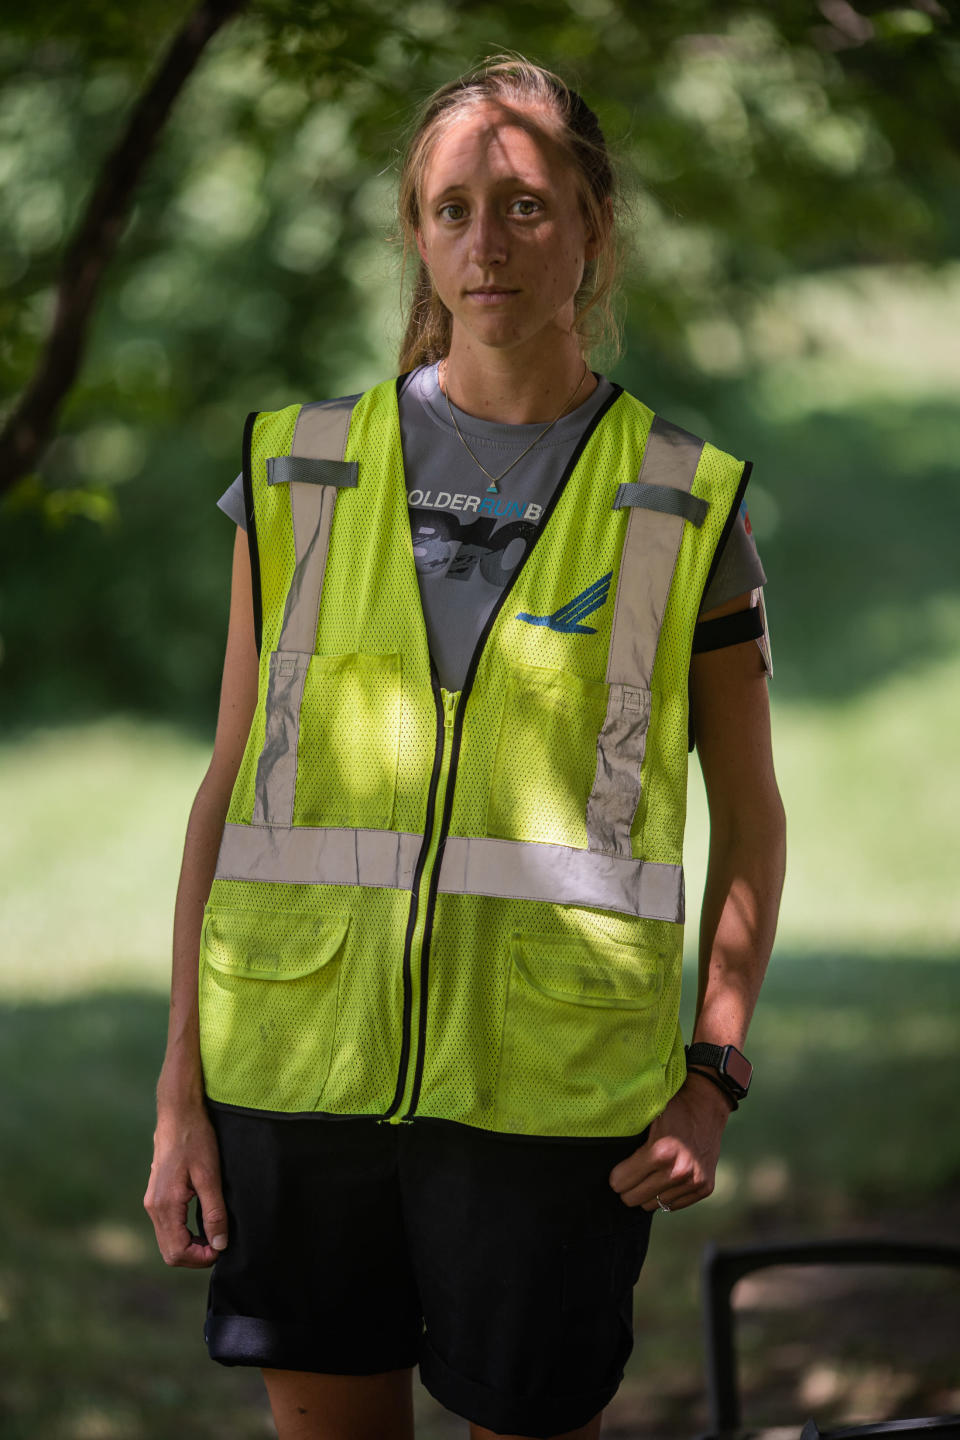 Annie Frodeman, who cobbled together work shifts registering emergency patients at a hospital, and as an airport ramp agent, in her airport safety vest near her home outside Burlington, Vt., July 21, 2020. (John Tully/The New York Times)